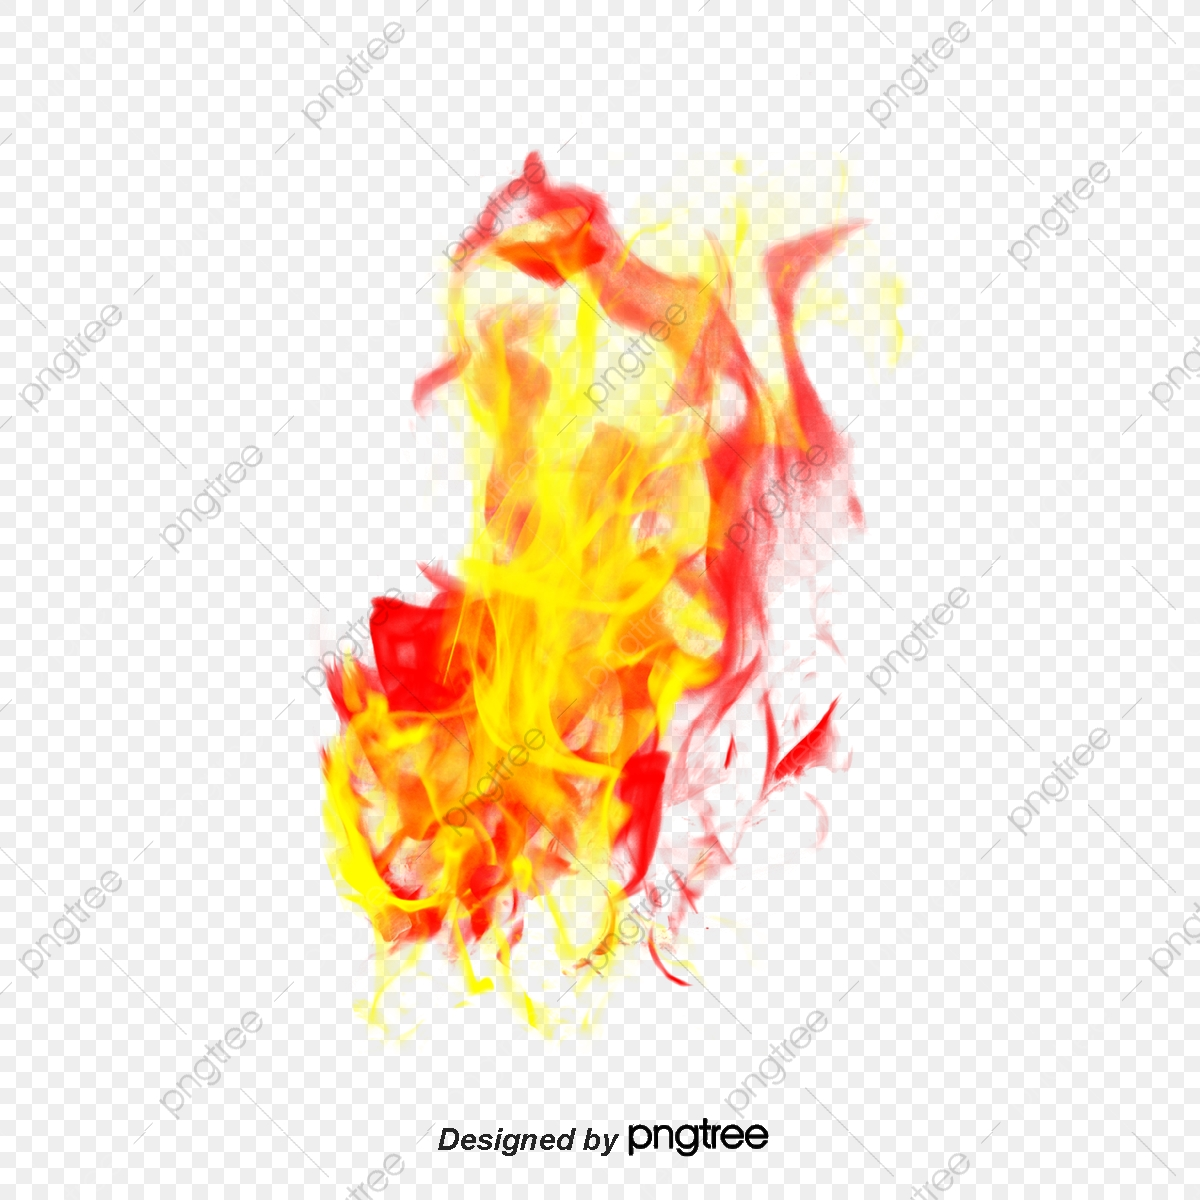 Red Flame Material, Flame Clipart, Flame, Flame Effect PNG